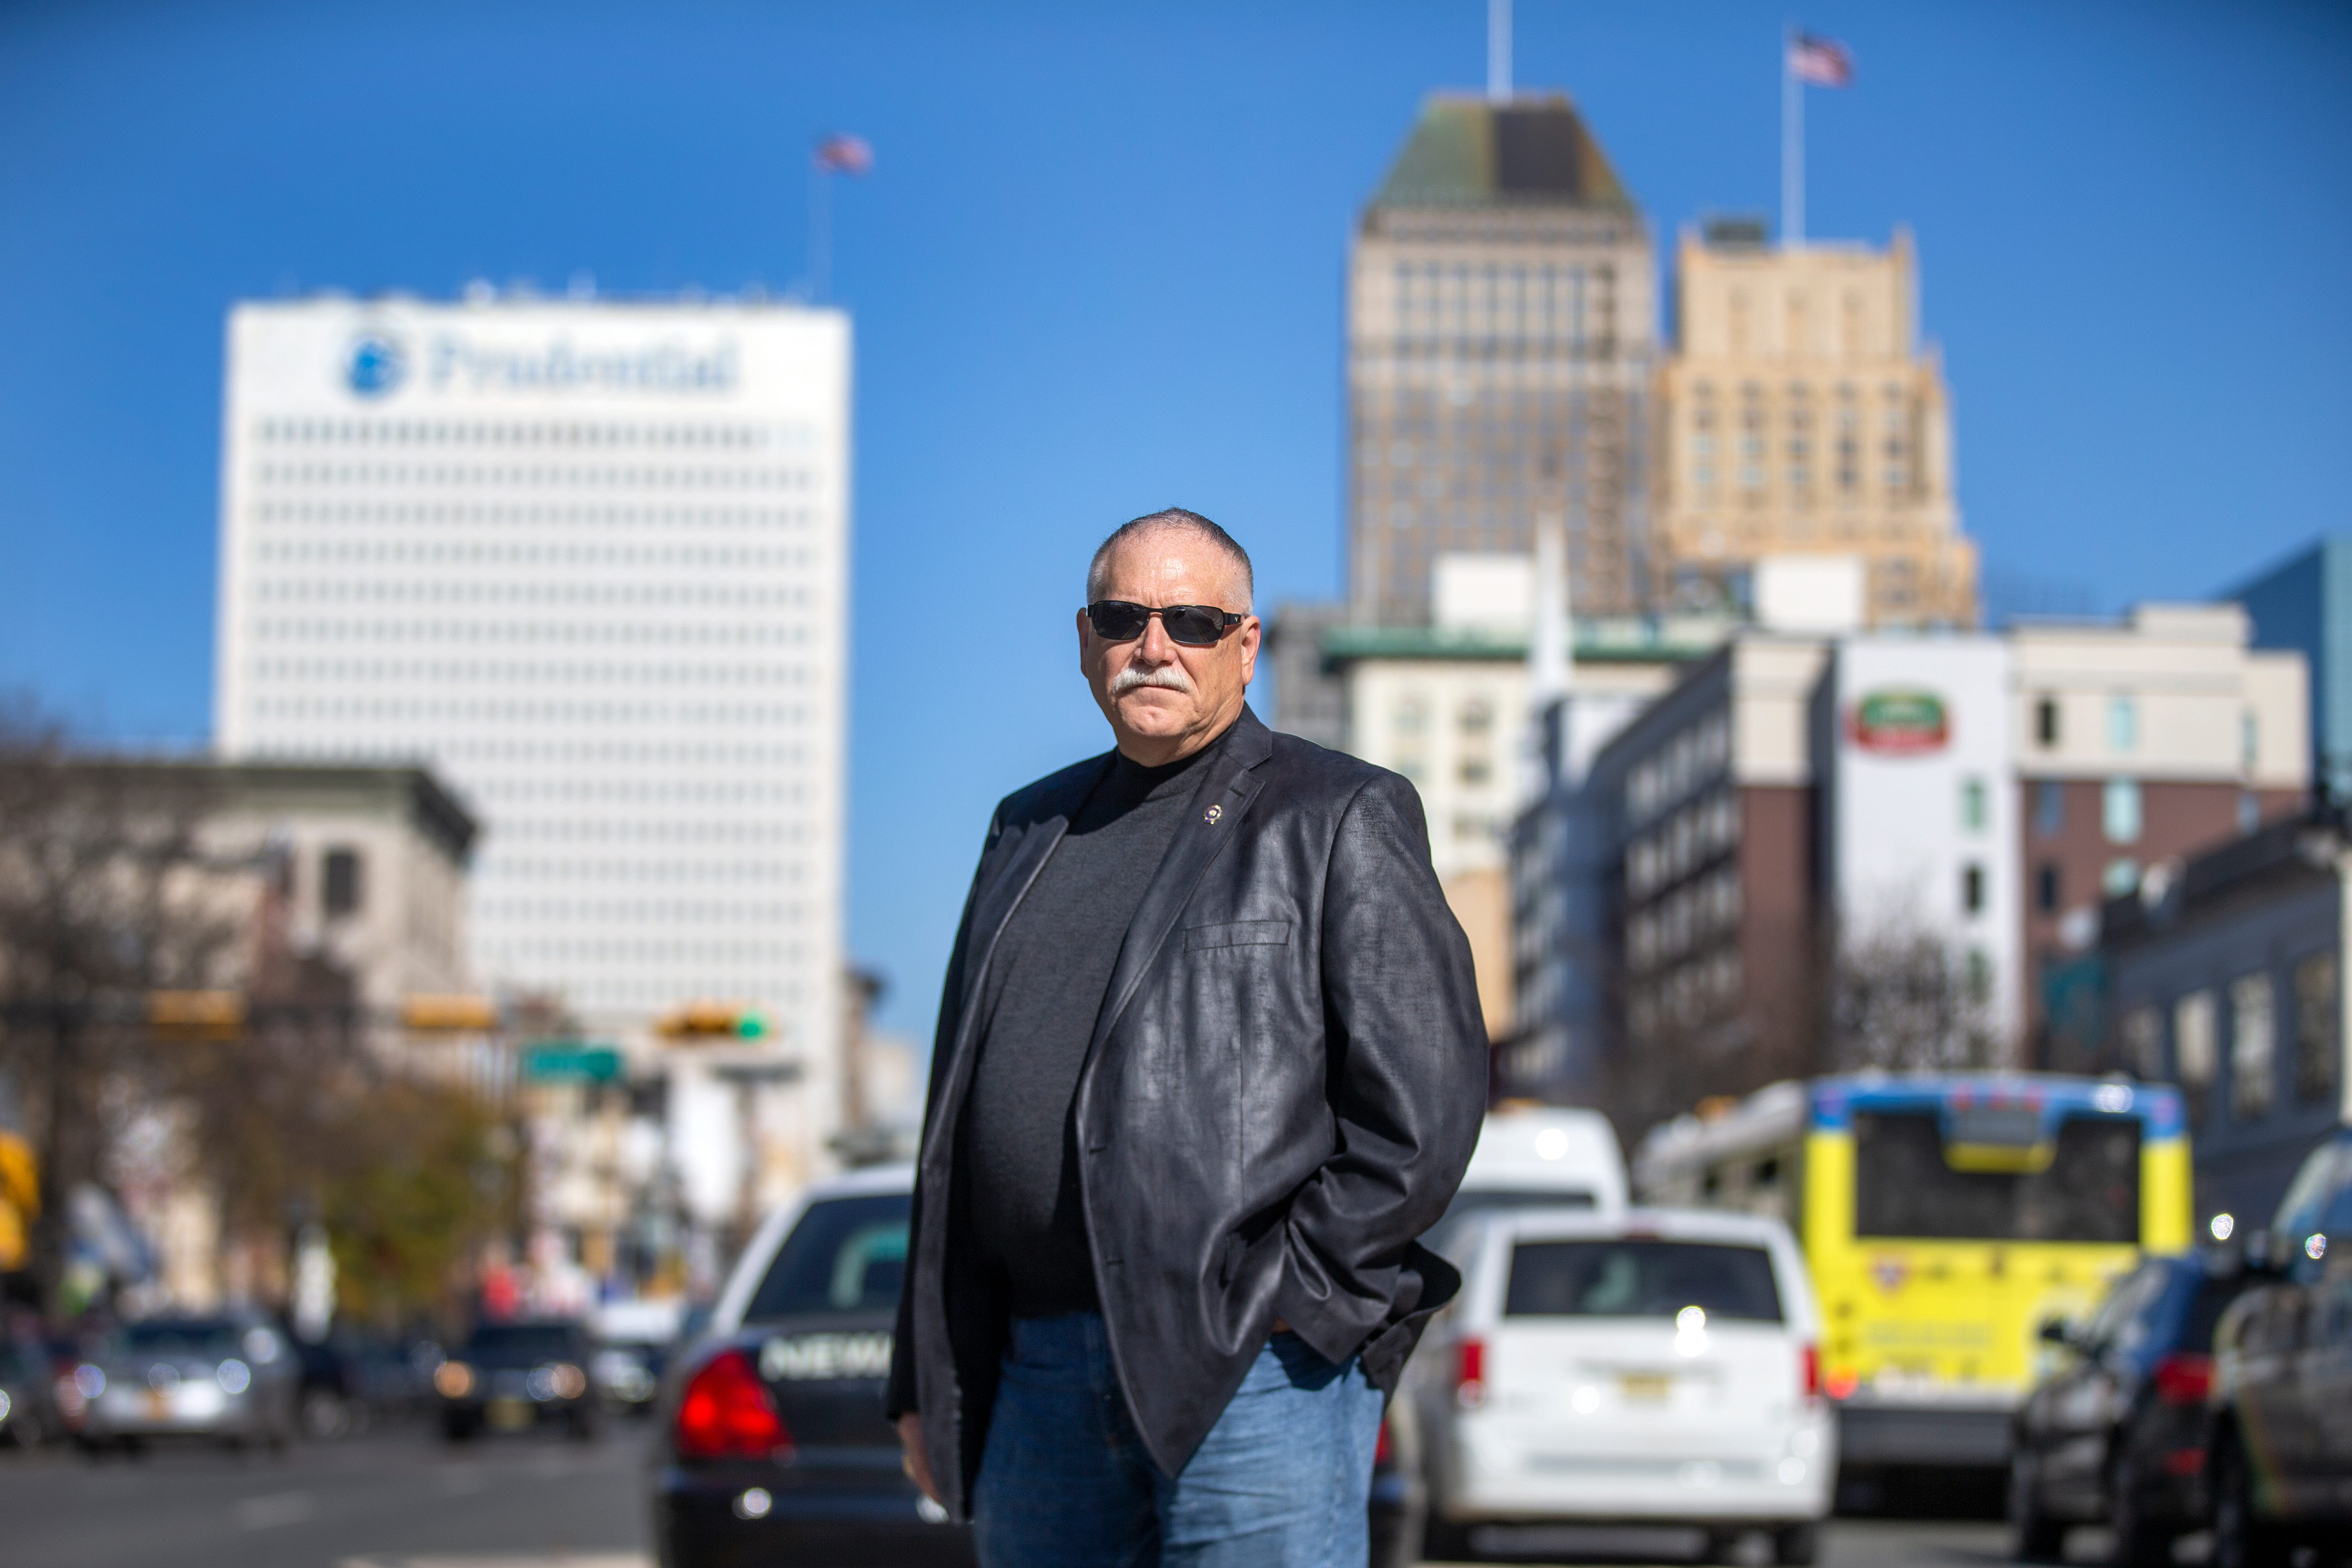 Former Newark Police Captain Barry Colicelli (shown in Newark) saw how crack devastated the impoverished city in the late 1980s and '90s.